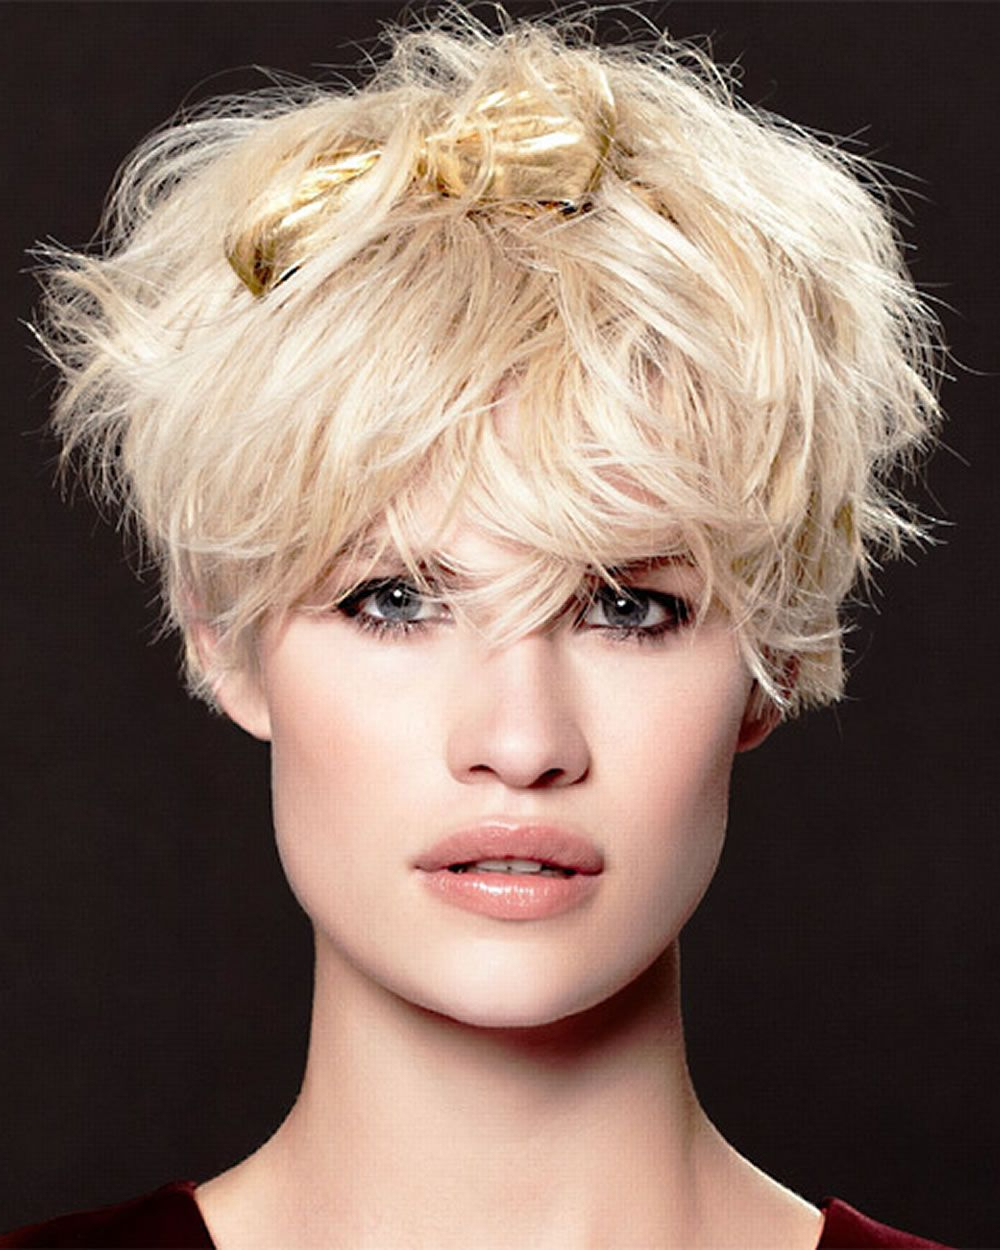 Short Haircuts Pixie And Bob For Women 2018 2019 | Hair | Pinterest In Pixie Layered Short Haircuts (View 21 of 25)